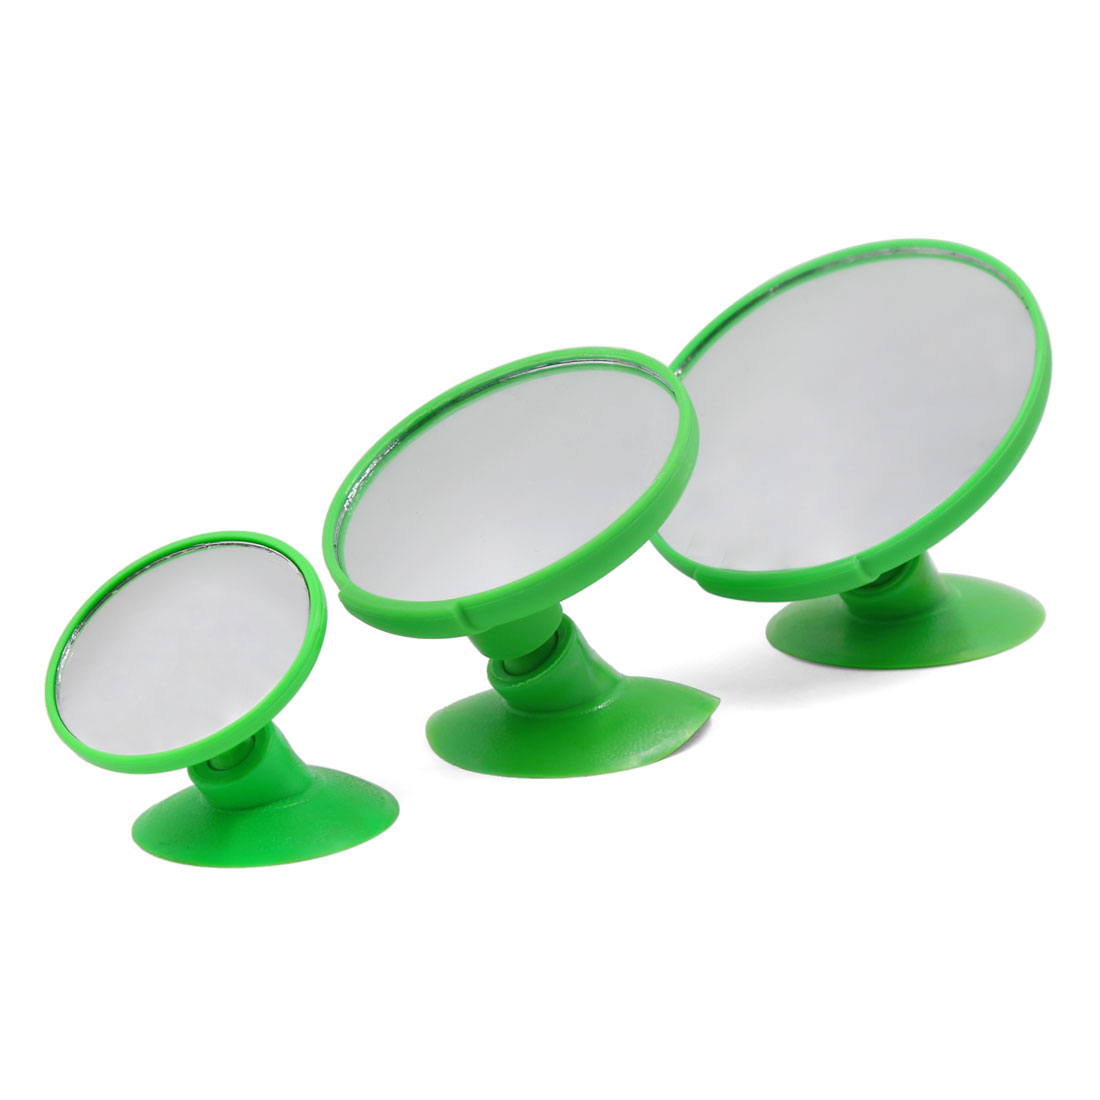 Unique Bargains Universal Car Green Shell Wide Angle Convex Blind Spot Rearview Mirror 3 Pcs